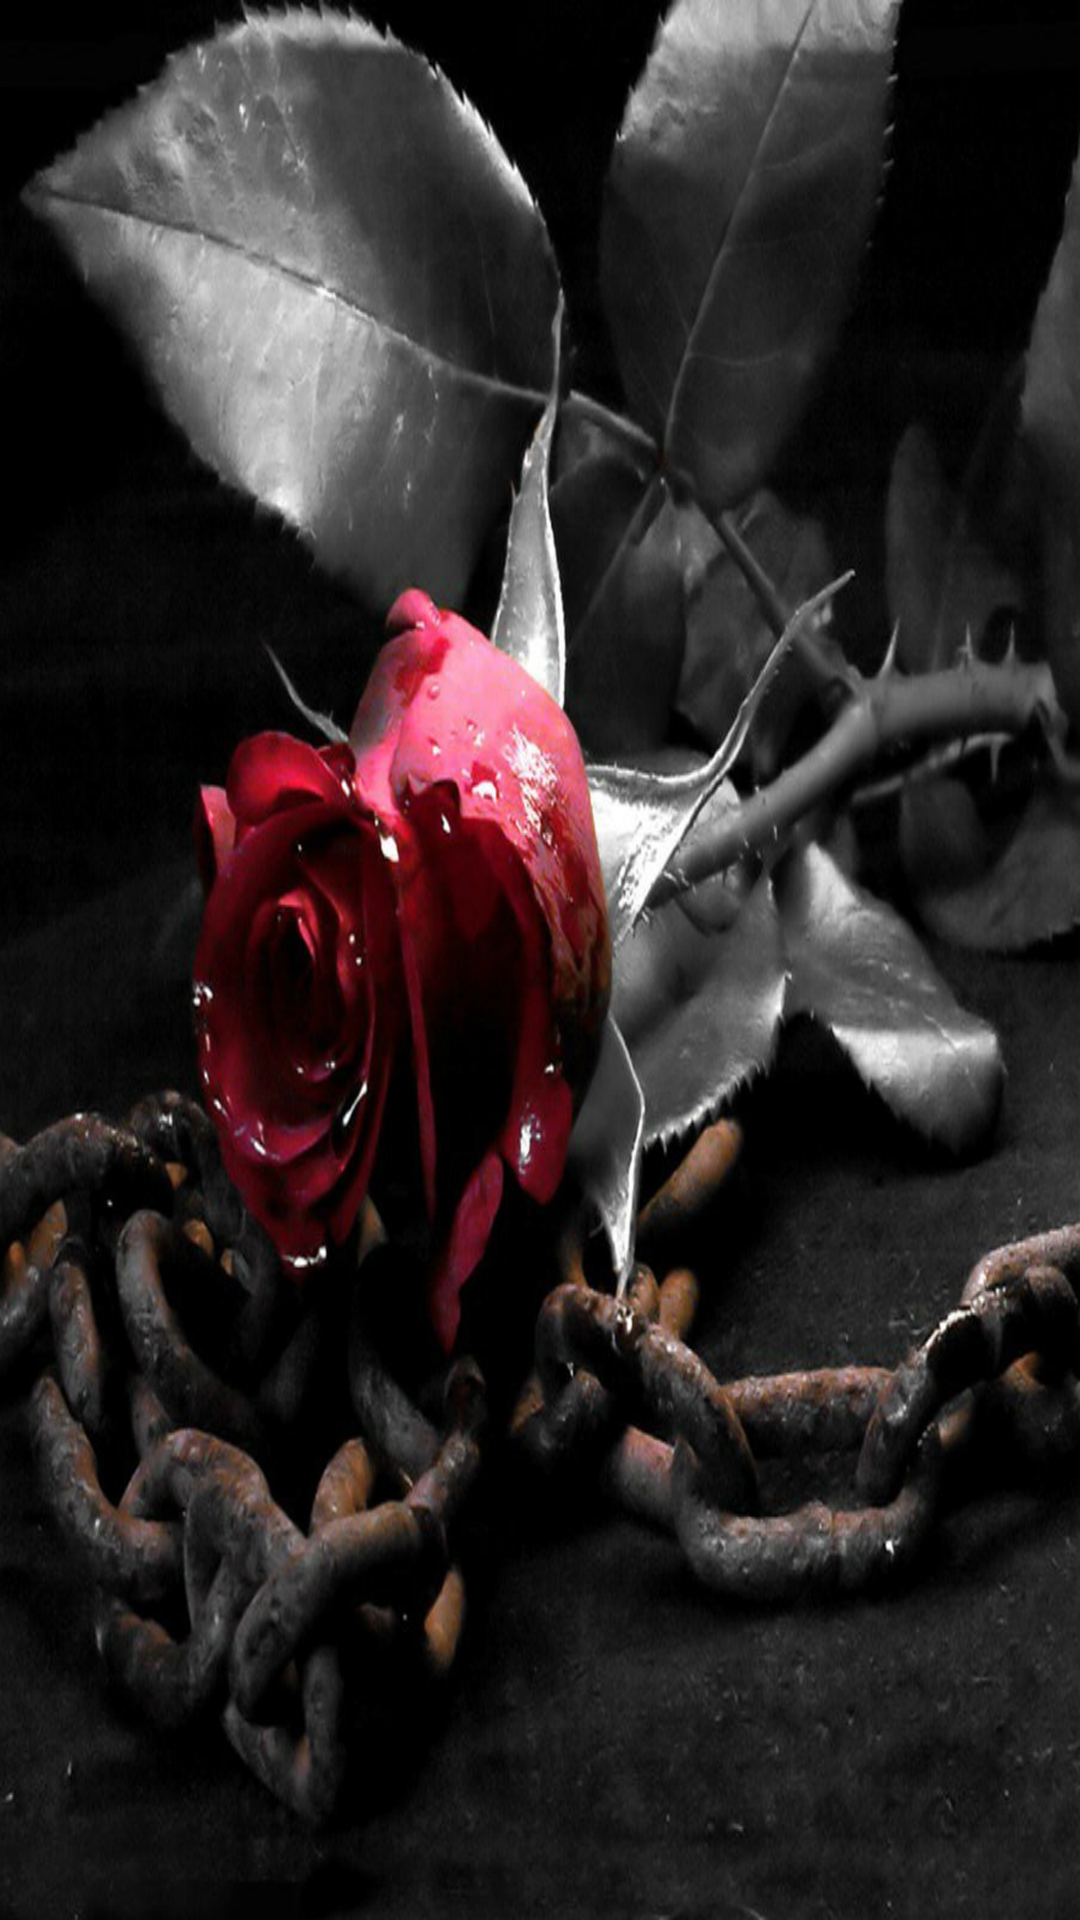 Rose wallpaper red rose in black and white iphone 5s hd - Black red rose wallpaper ...